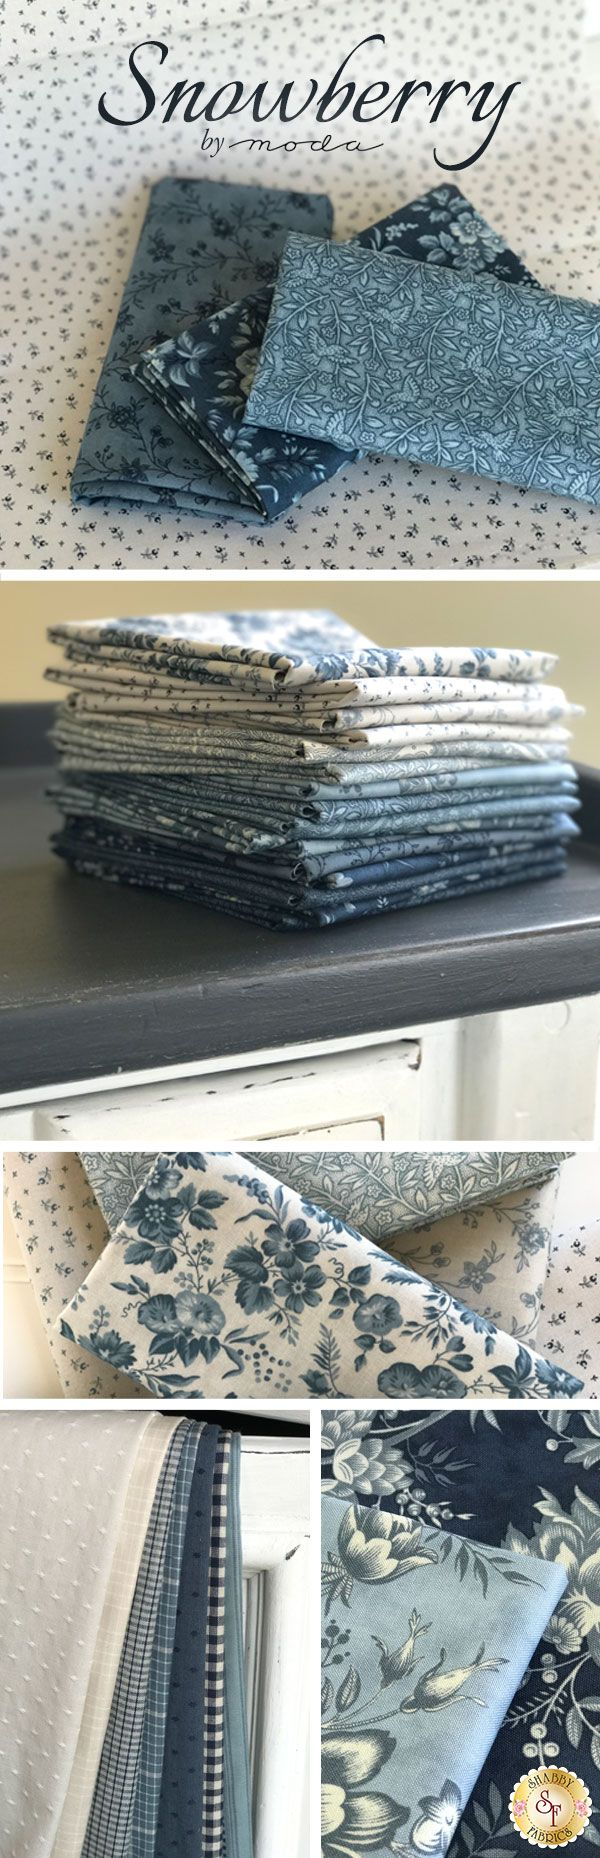 Snowberry is a beautiful winter collection by 3 Sisters for Moda Fabrics available at Shabby Fabrics!